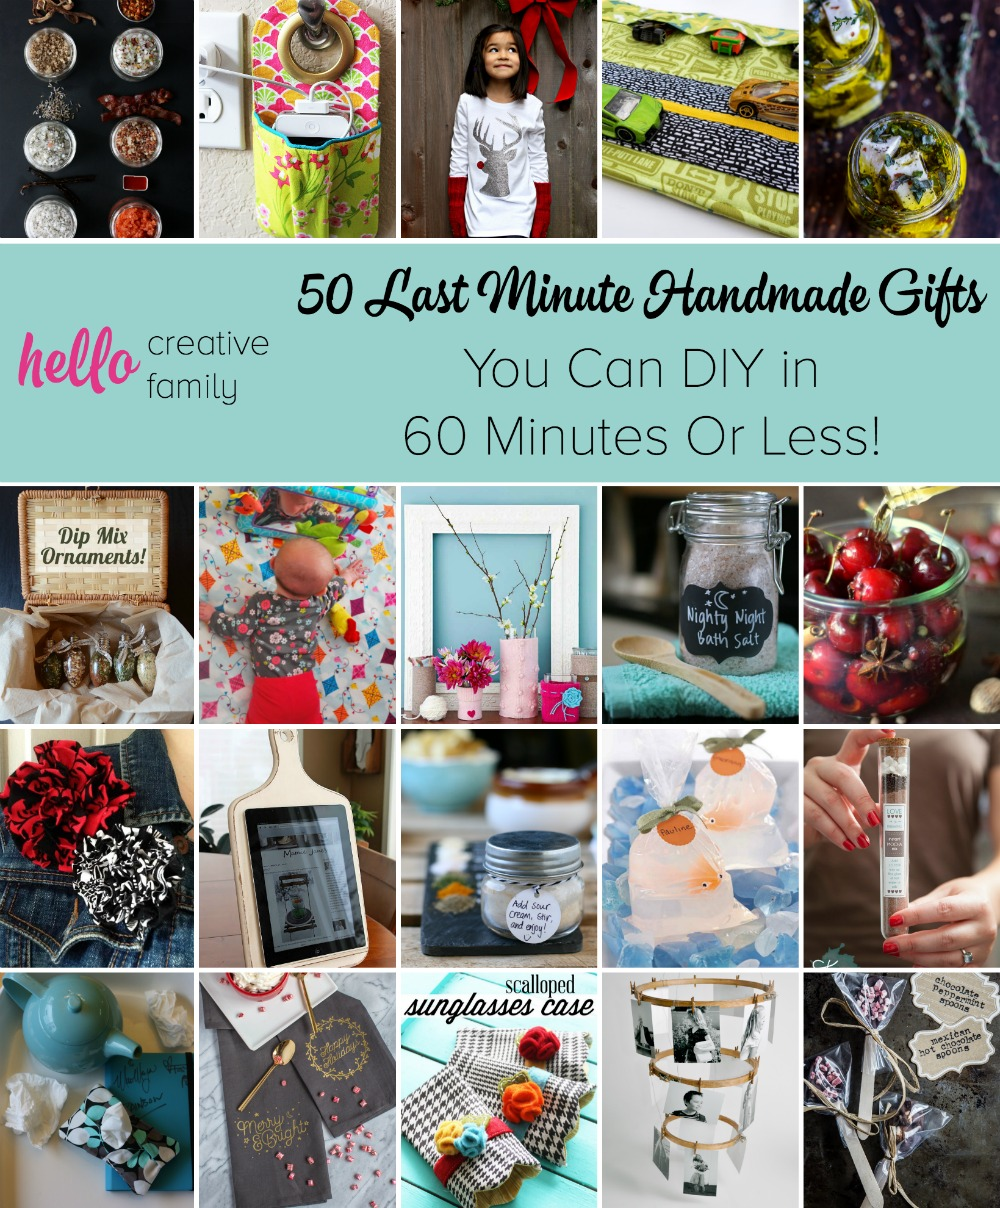 50 last minute handmade gifts you can diy in 60 minutes or less here are 50 last minute handmade gifts you can solutioingenieria Image collections